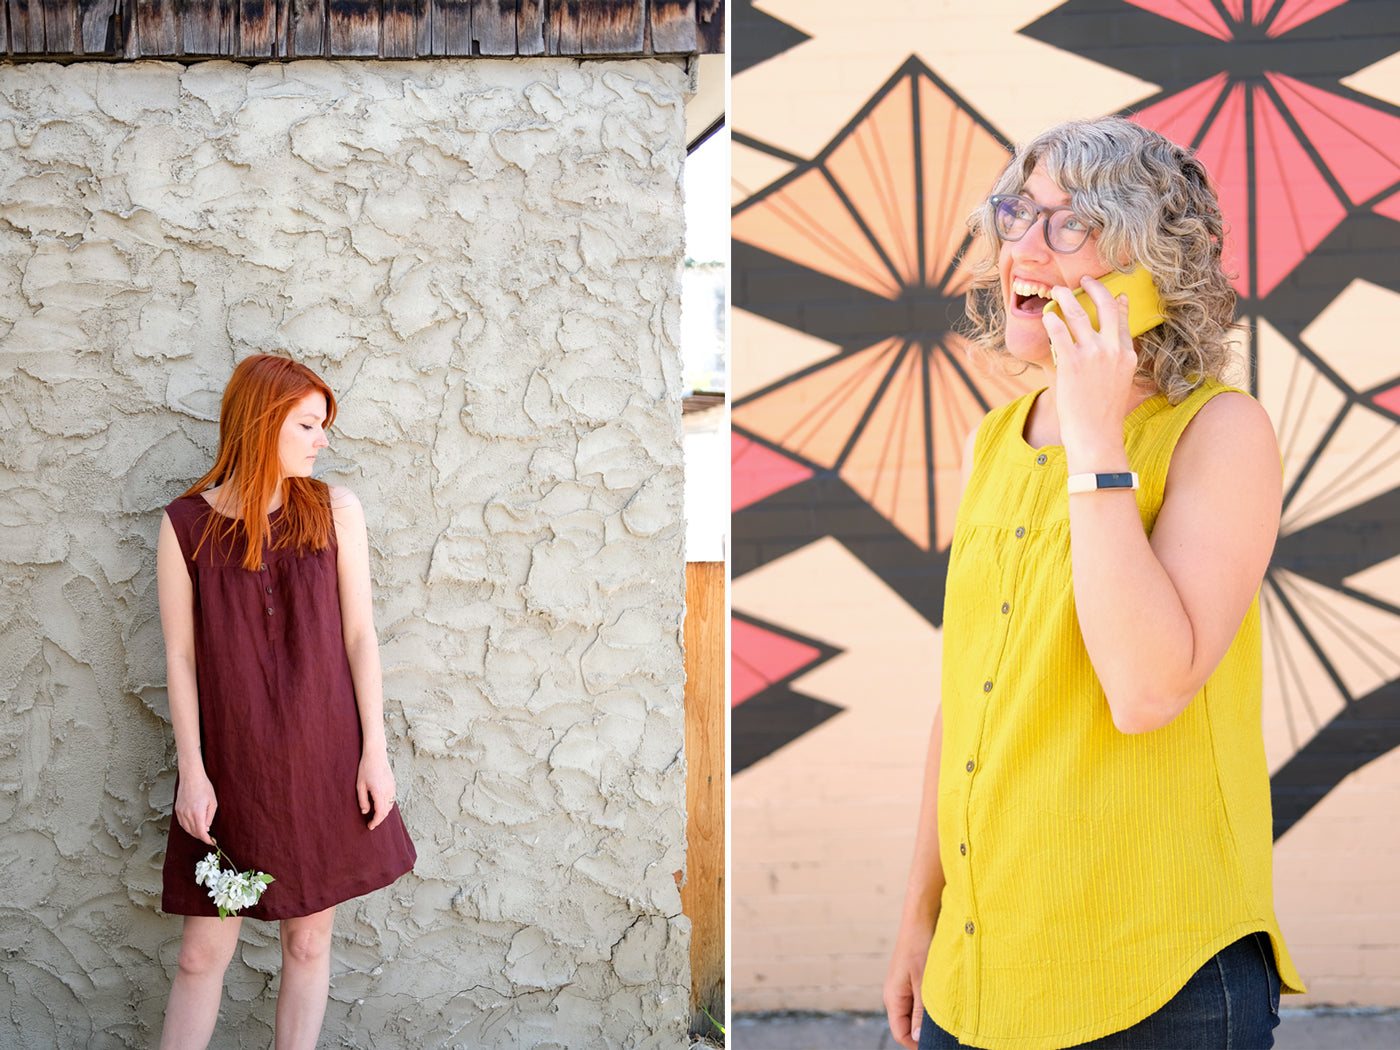 Two Sleeveless Bromes- A Alison Glass Mariner Cloth shirt and a Burgundy Linen dress